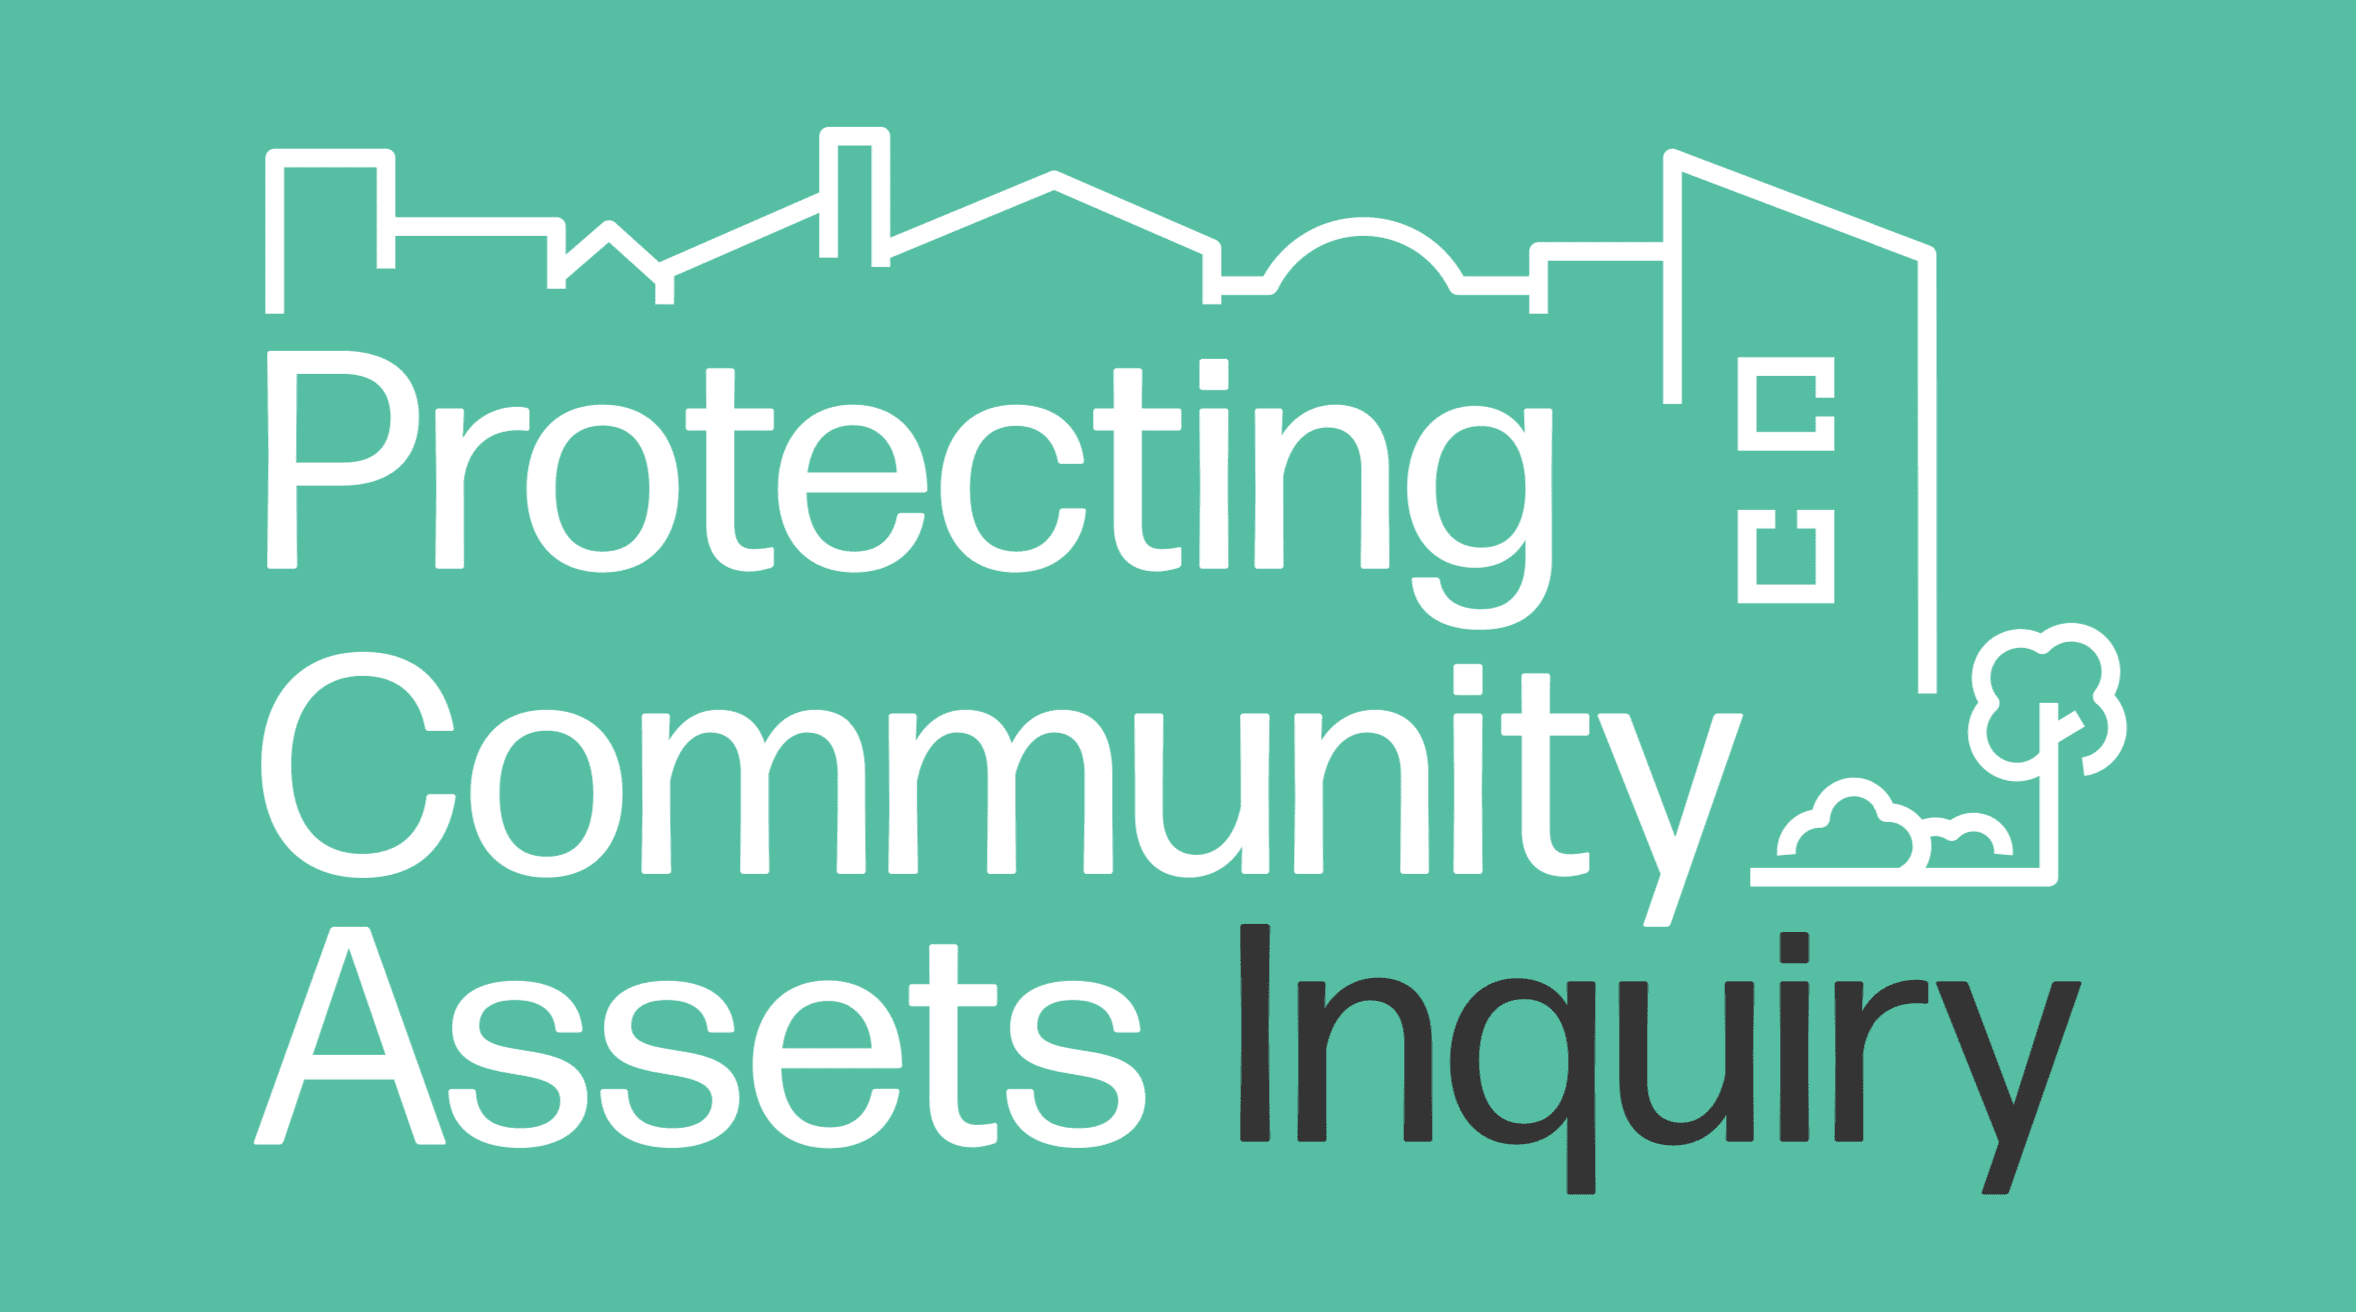 Inquiry seeks to protect a potential 1,300 community assets at risk of falling out of community hands